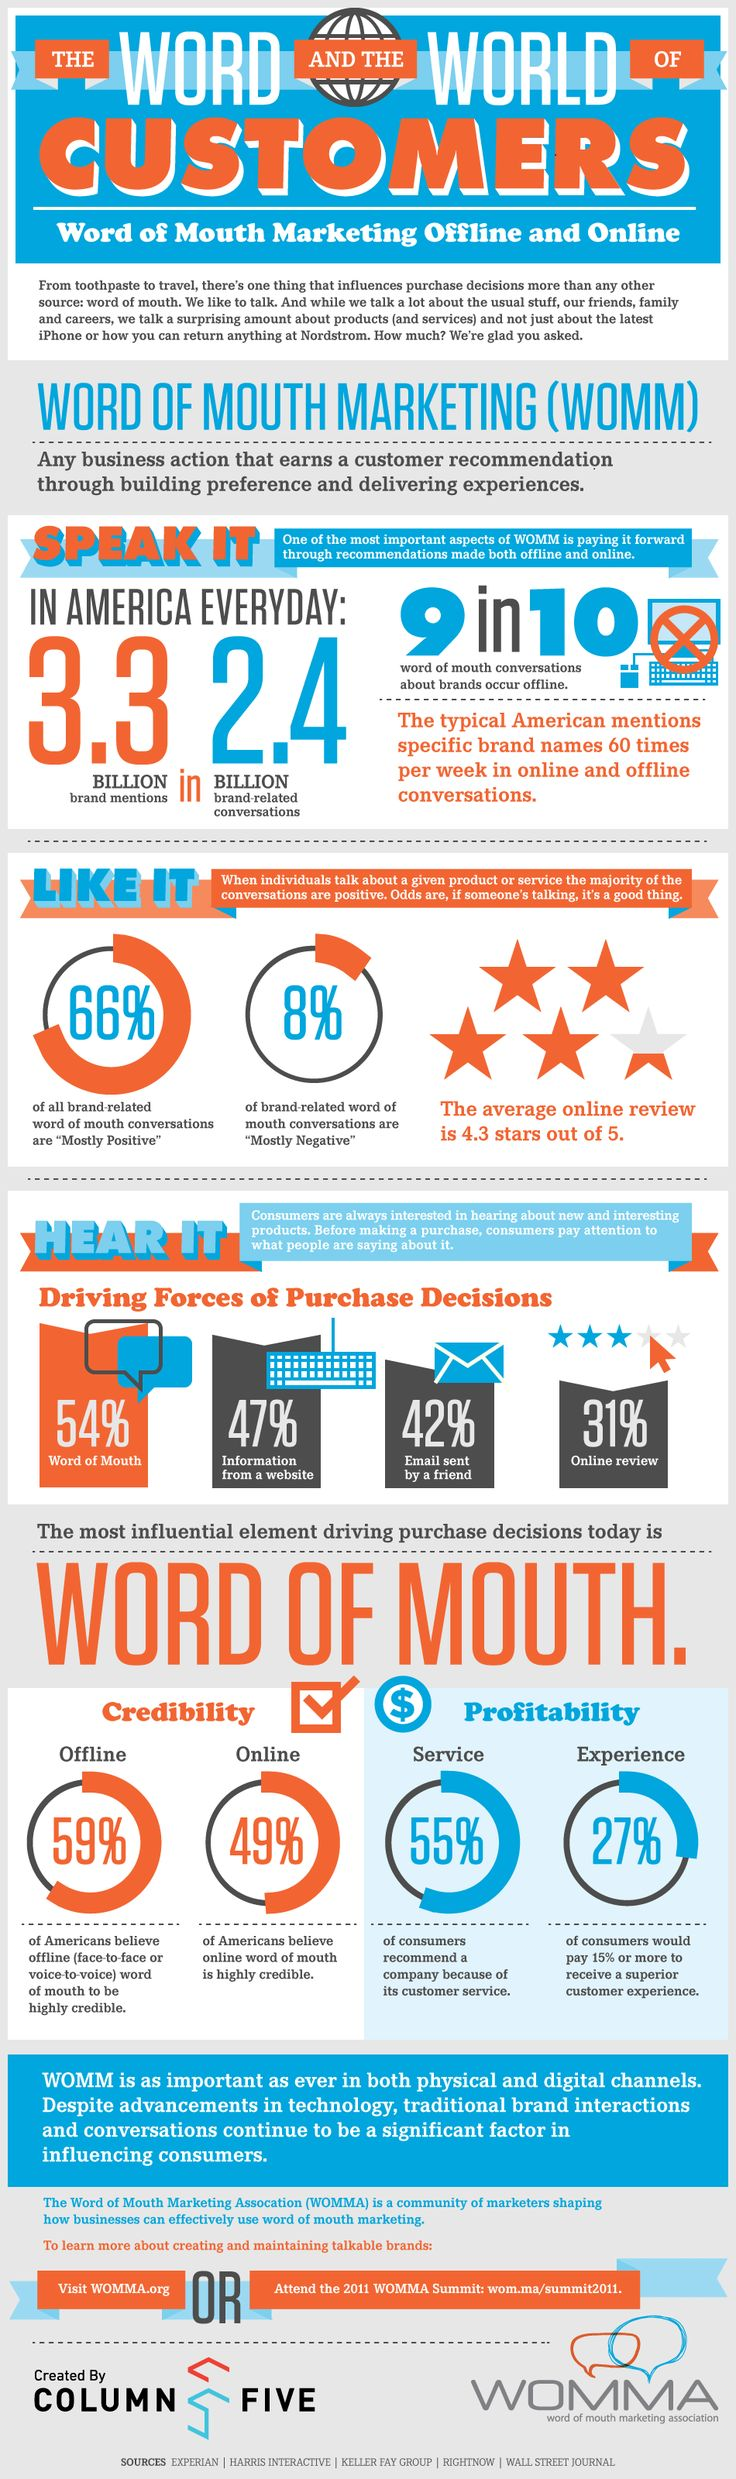 The word and world of customers [infographic] - Holy Kaw!